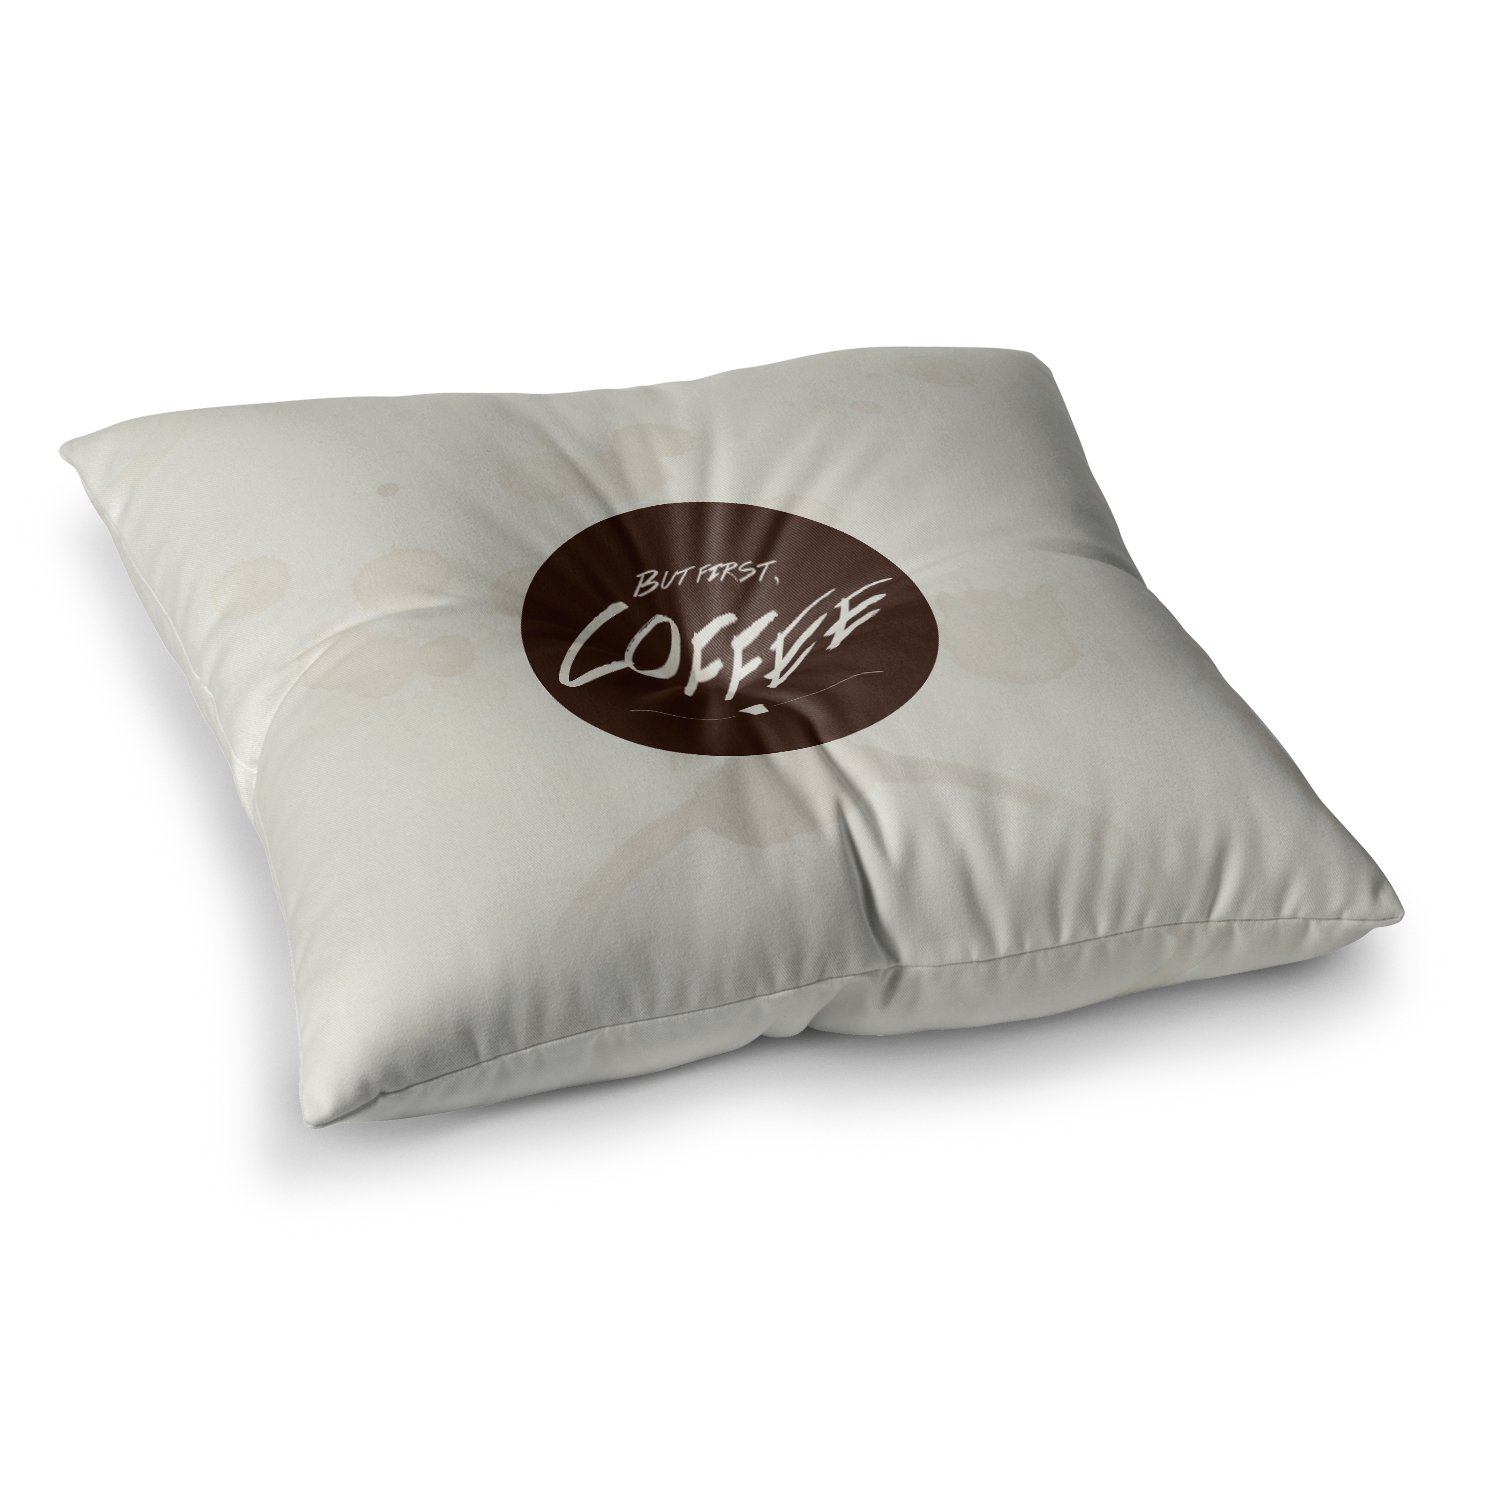 Kess InHouse Juan Paolo But First 23 x 23 Square Floor Pillow Coffee Beige Brown